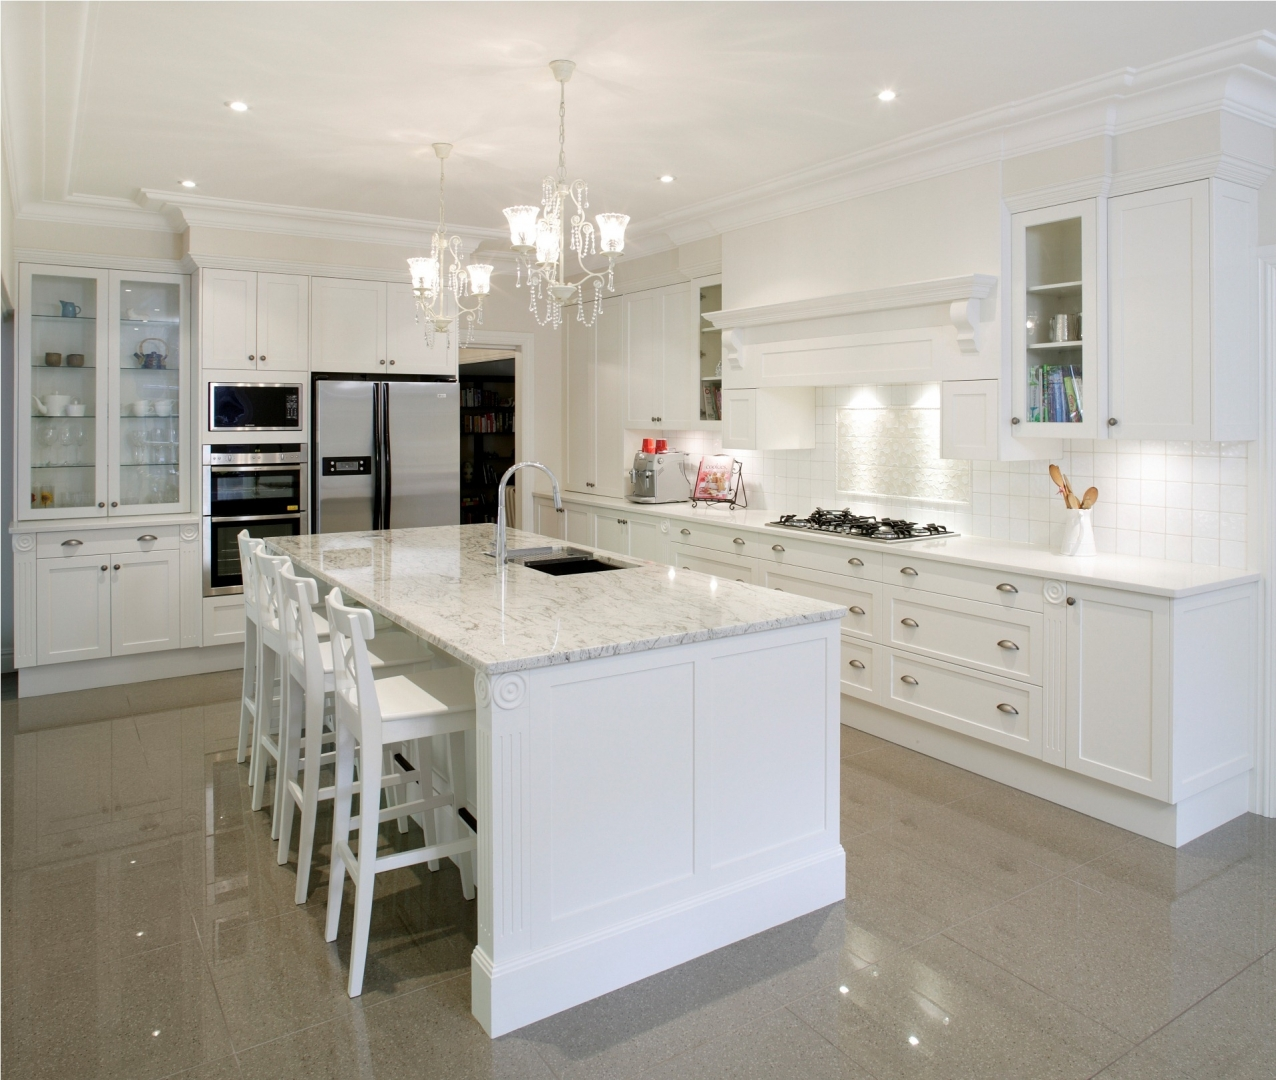 White Kitchens the all white kitchen allows colorful patterns on the tiled backsplash windows rug and dishes in the lighted islands to get the attention they deserve White Kitchen